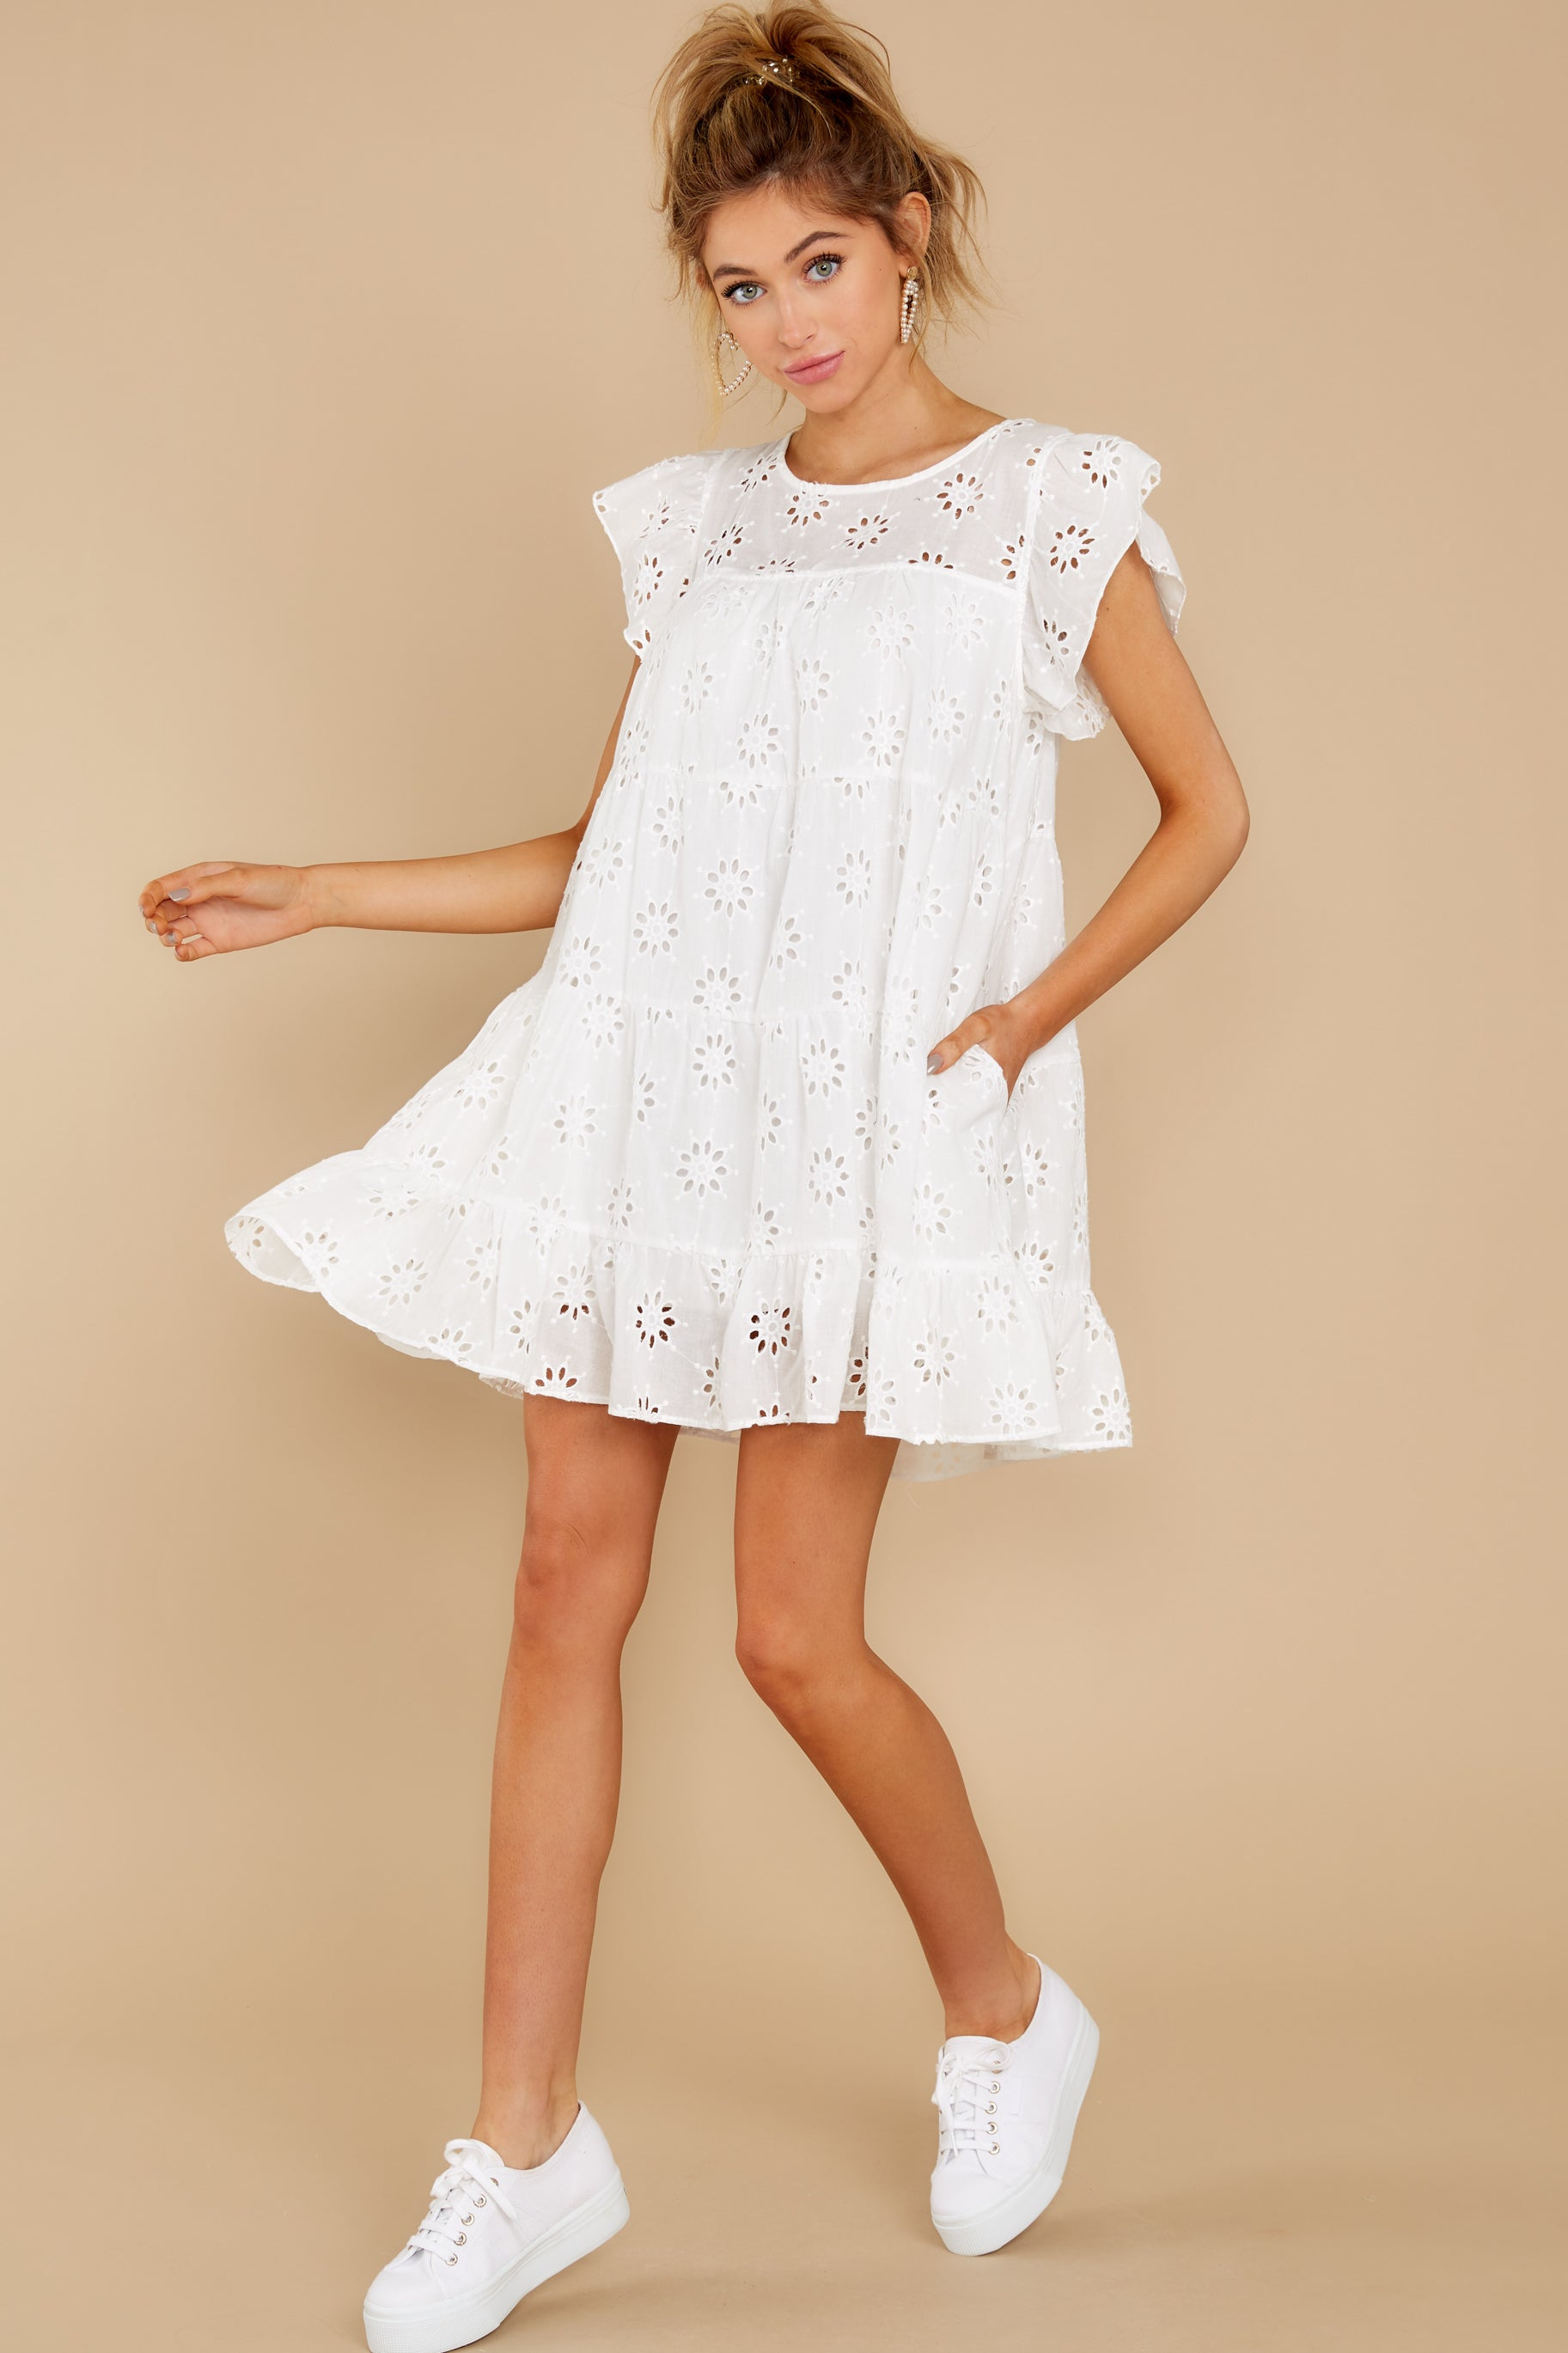 3 Eye For An Eyelet White Dress at reddress.com